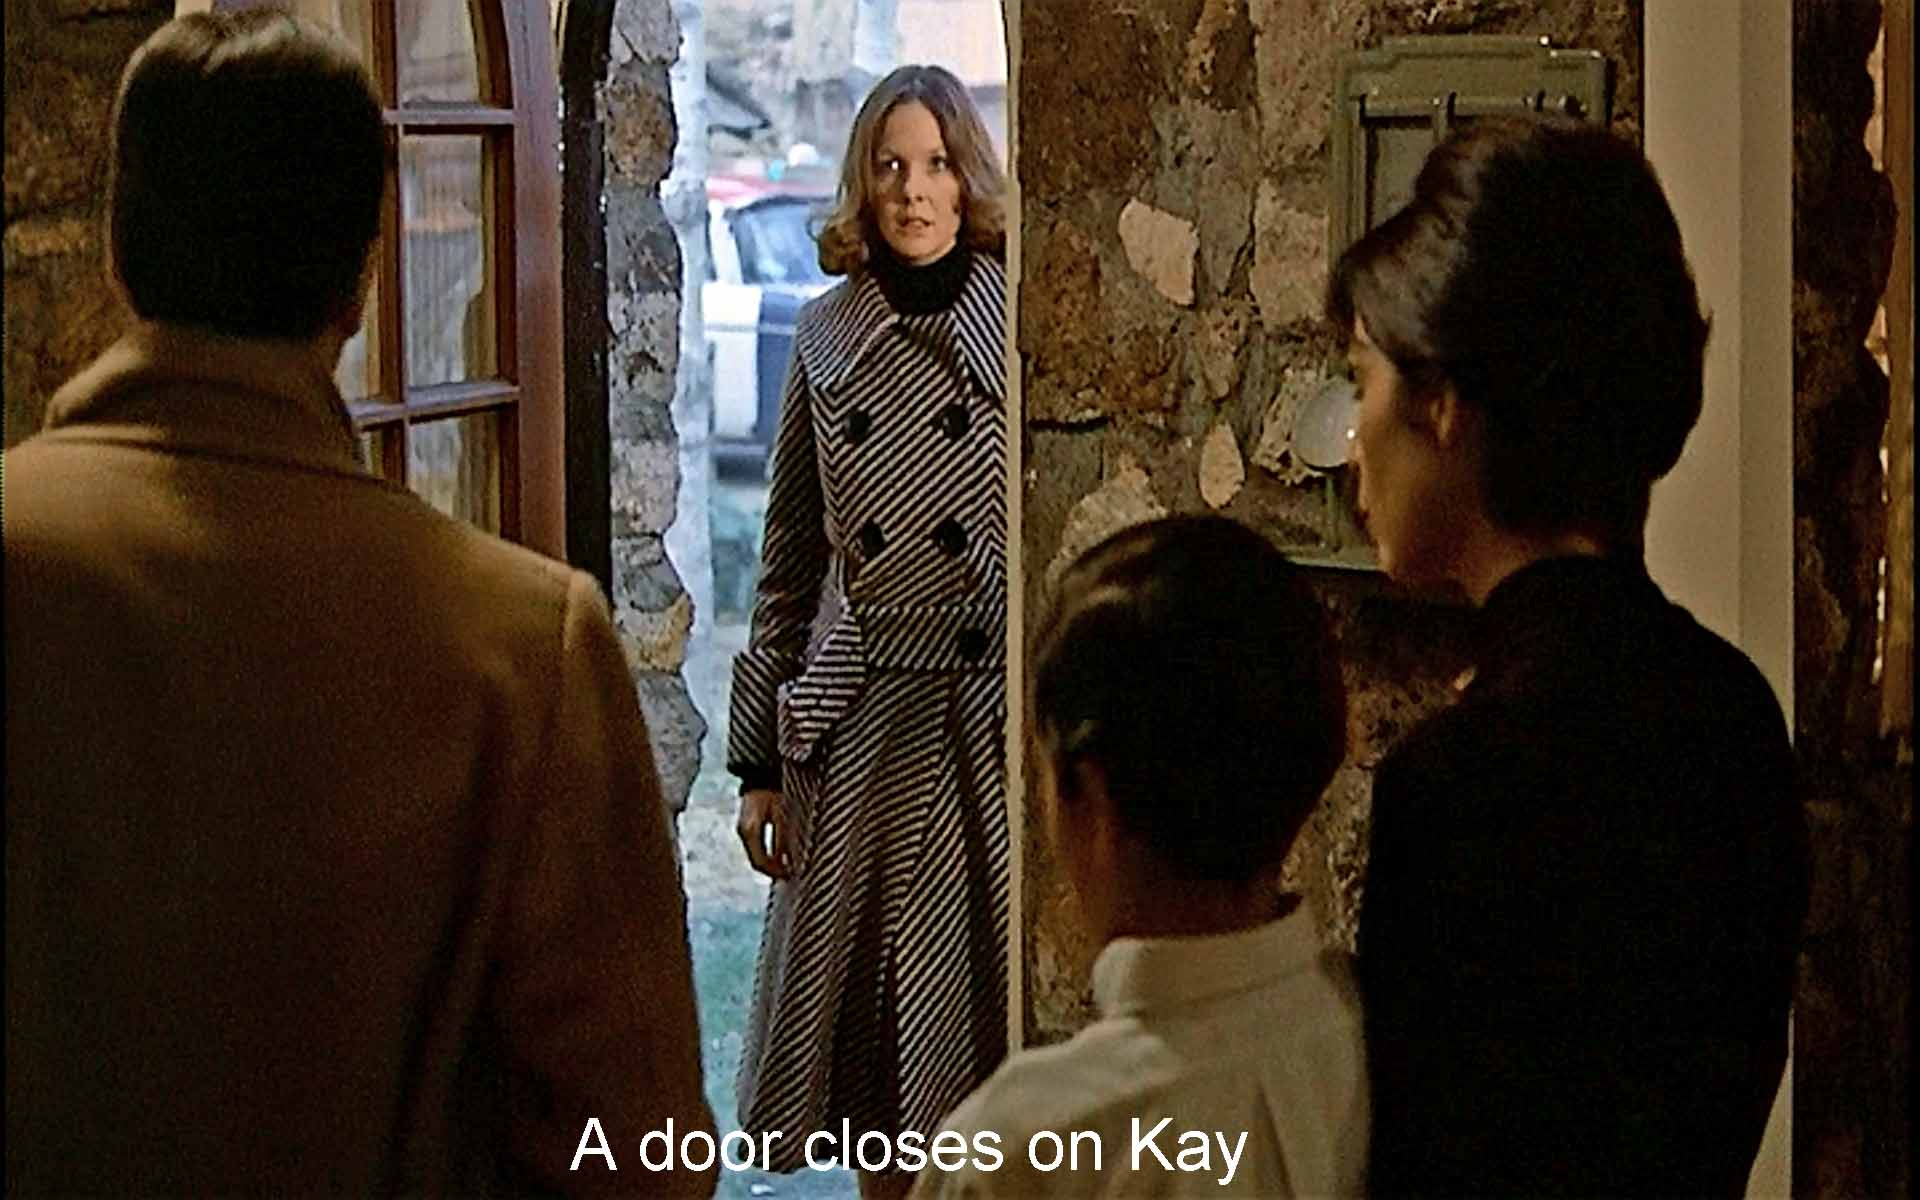 A door closes on Kay